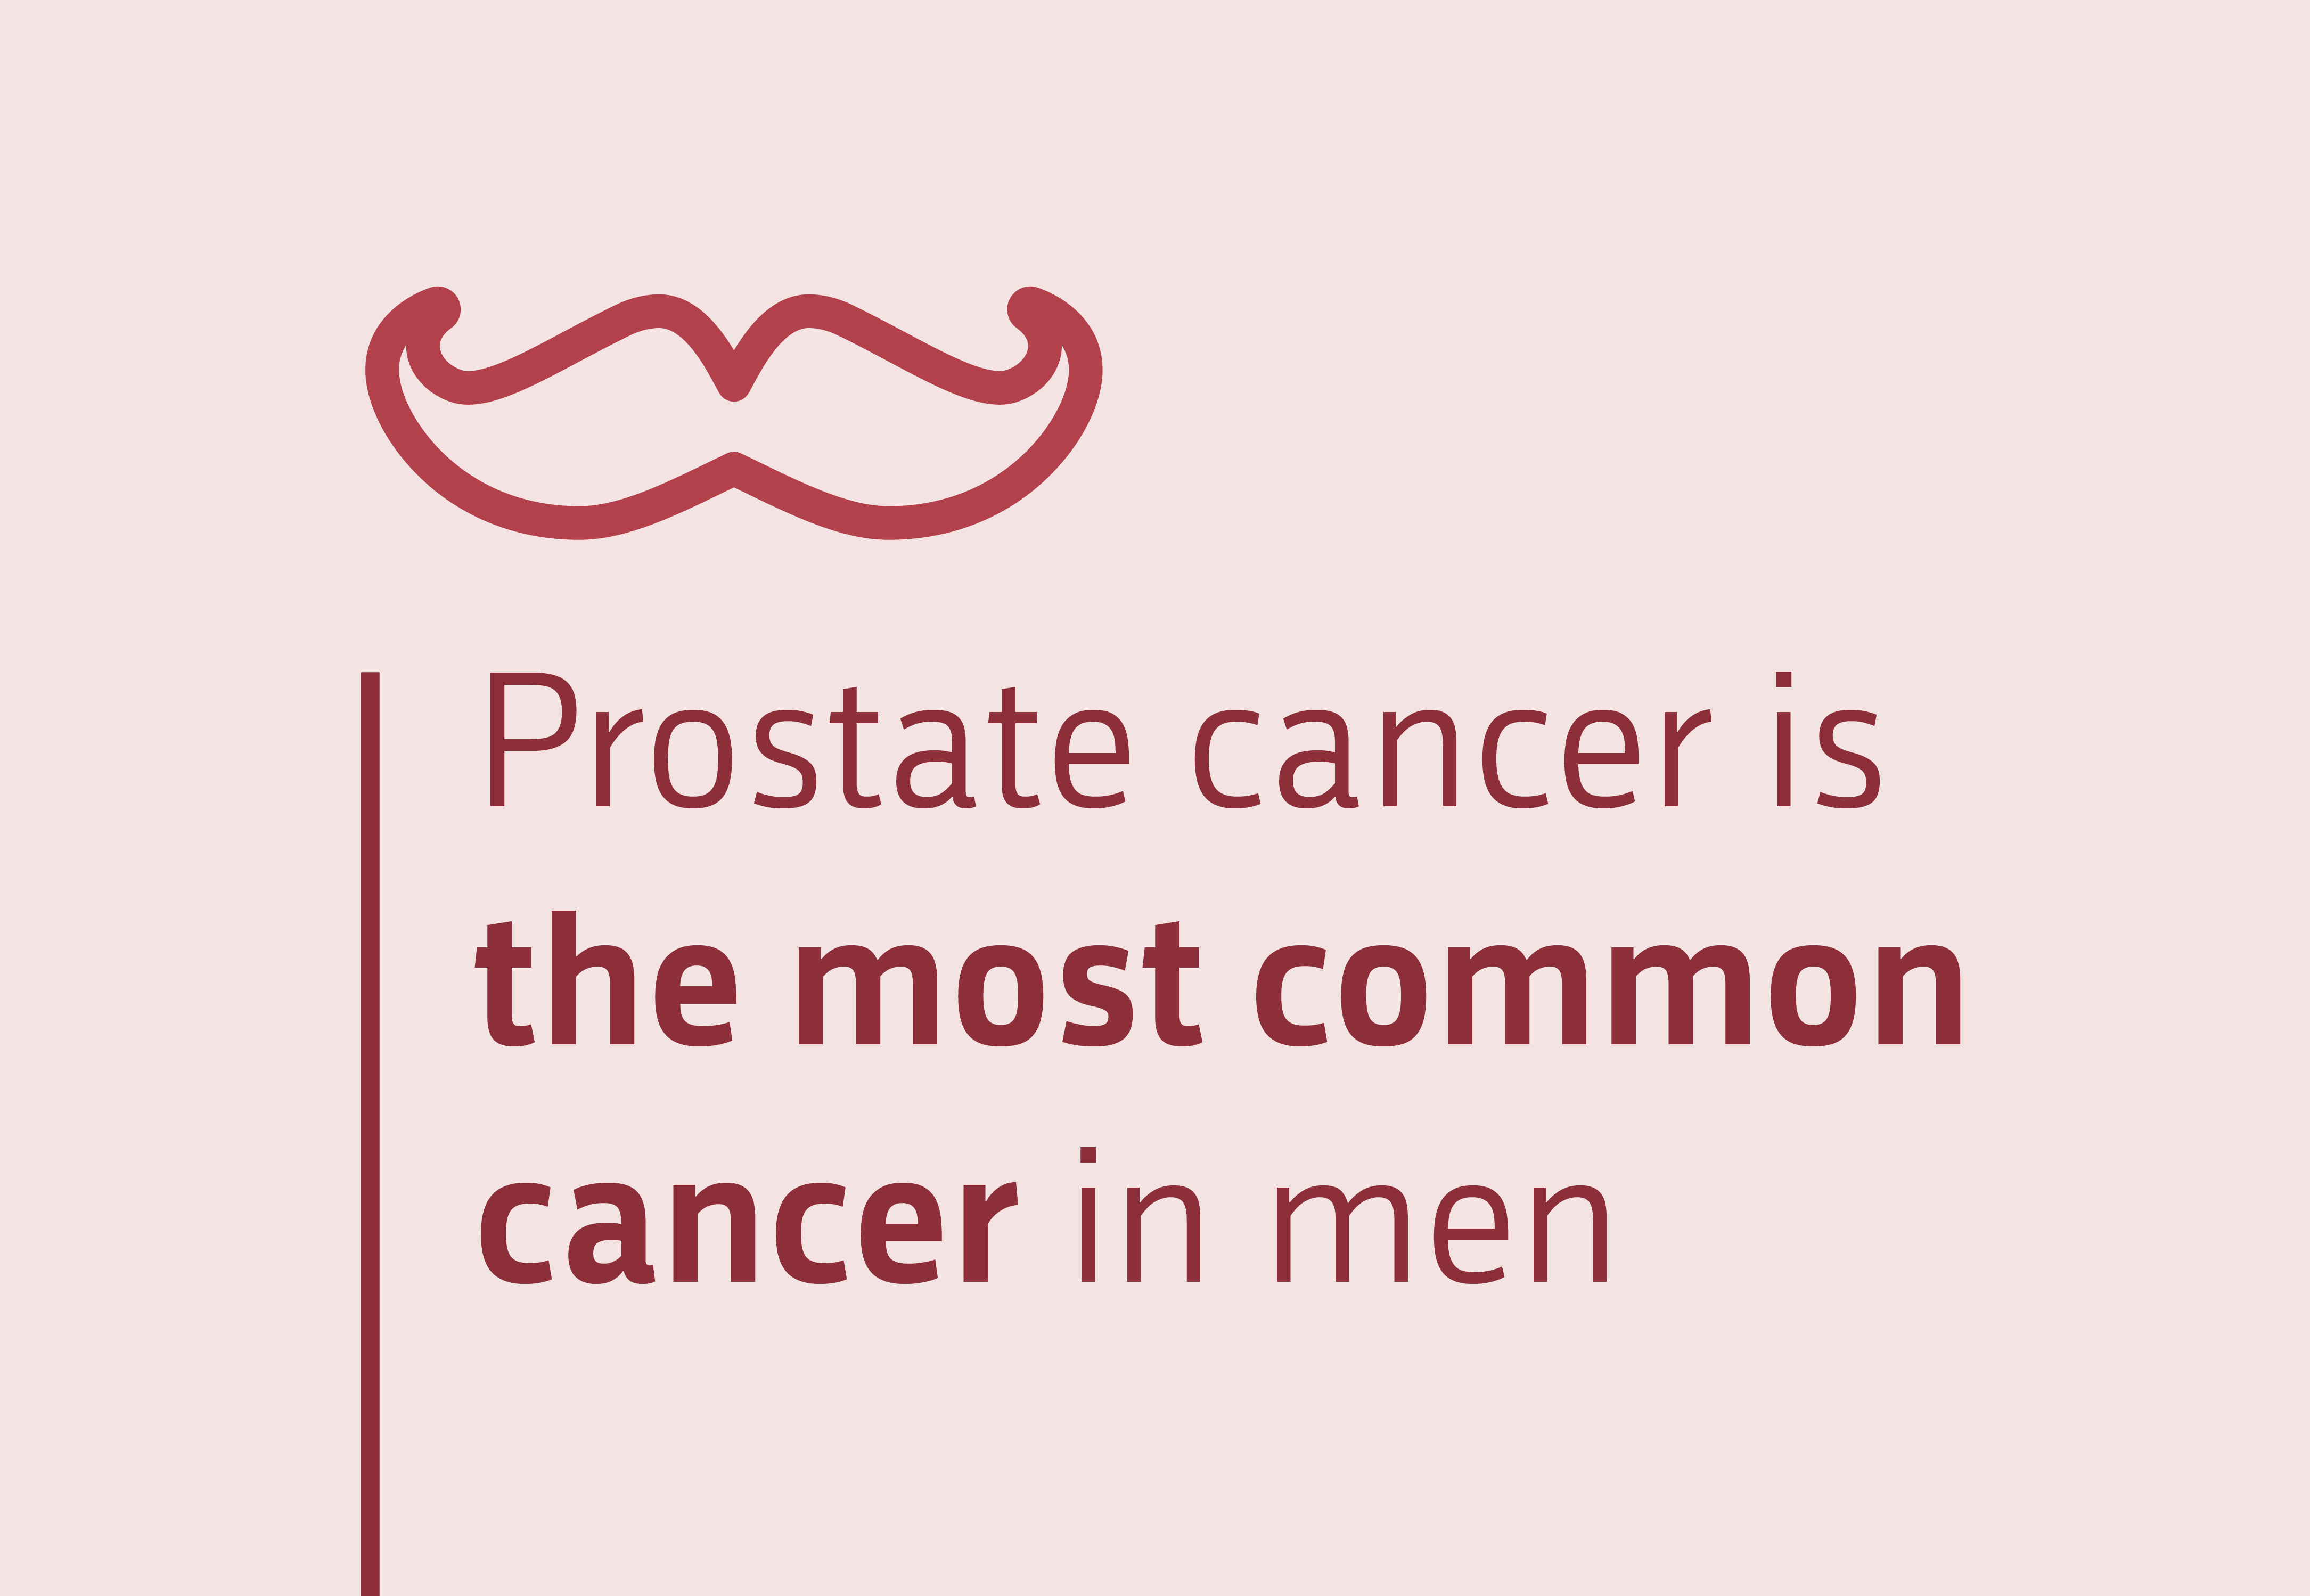 Prostate cancer is the most common cancer in men